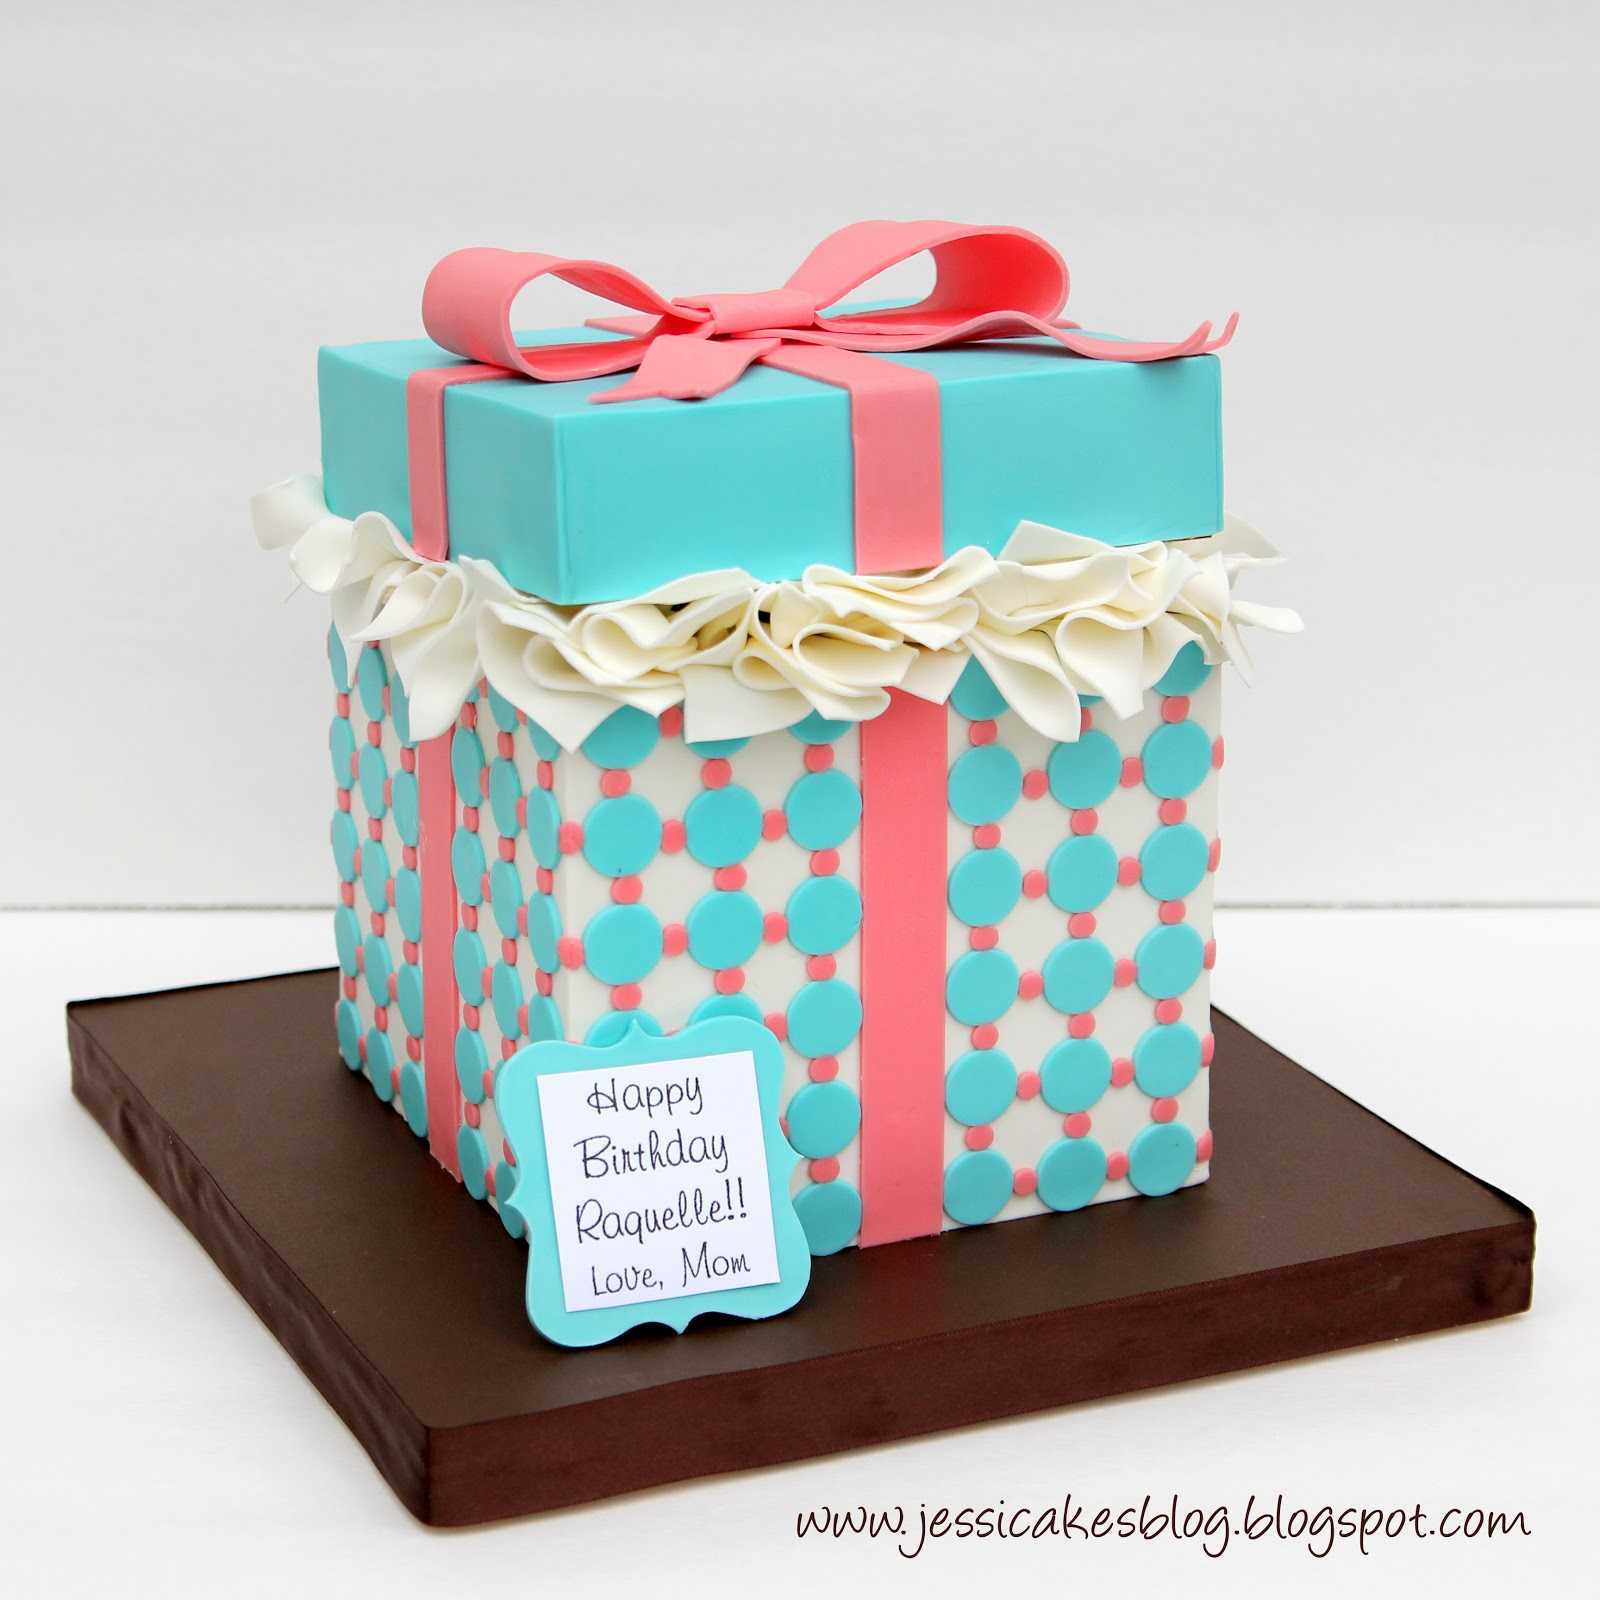 Gift box cake tutorial jessica harris cake design life time treasured moments babies cuddling in my arms sweet girls drawing me pictures my adorable son wanting to marry meall those precious moments negle Images